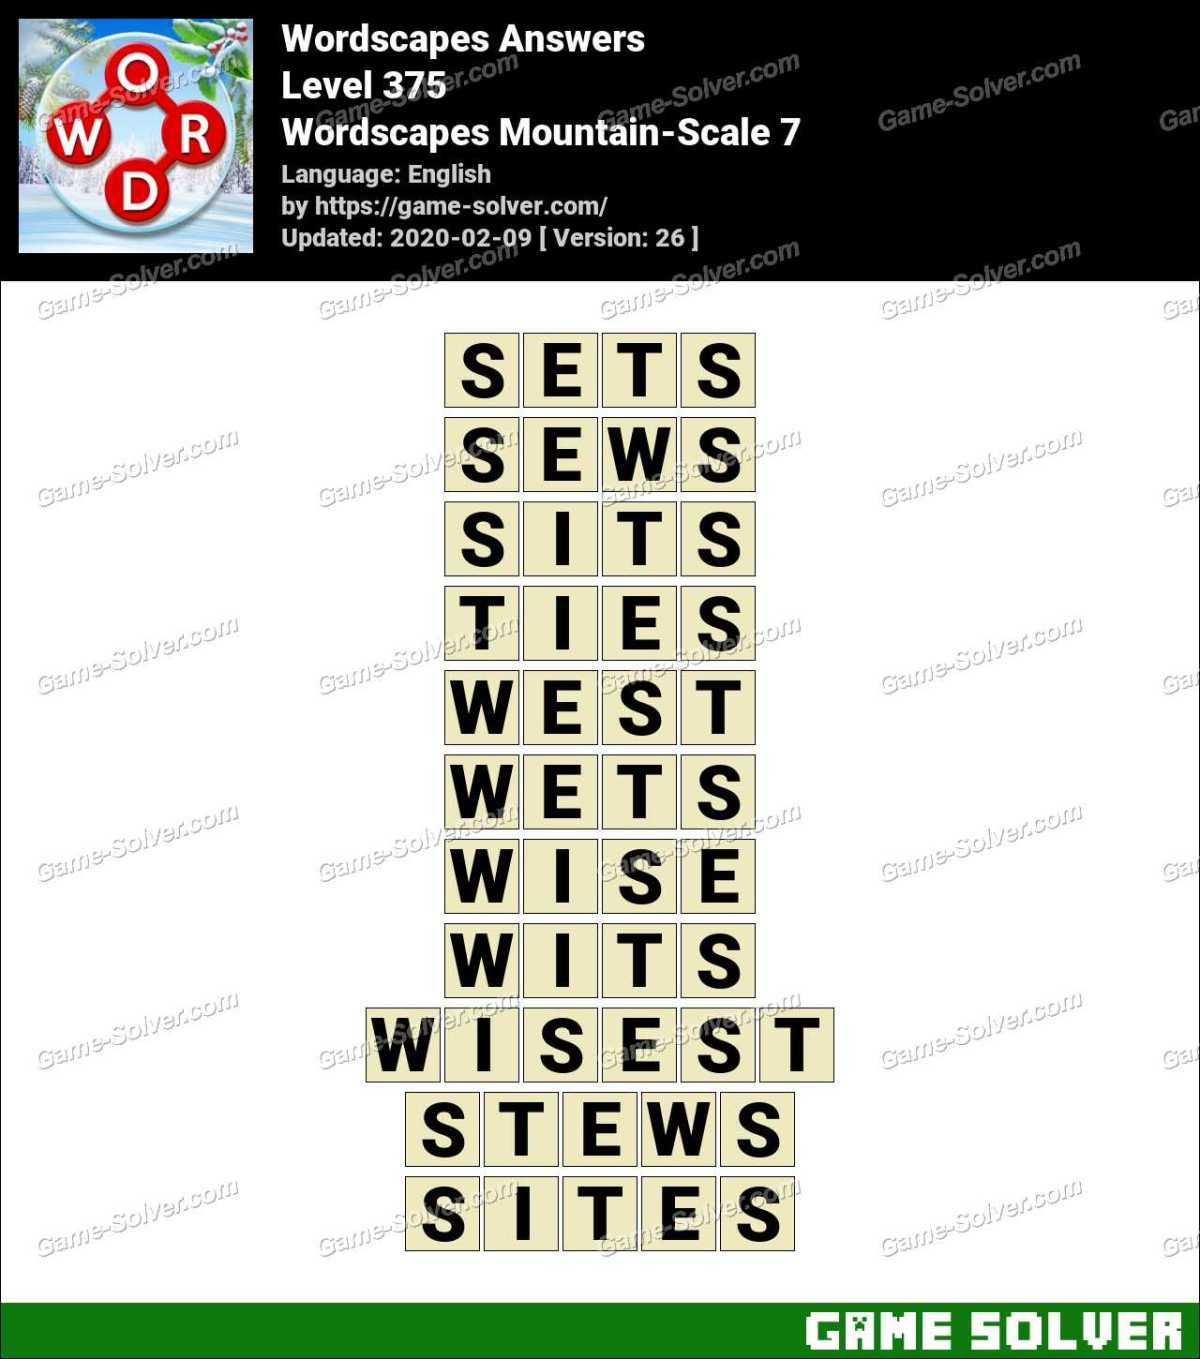 Wordscapes Mountain-Scale 7 Answers